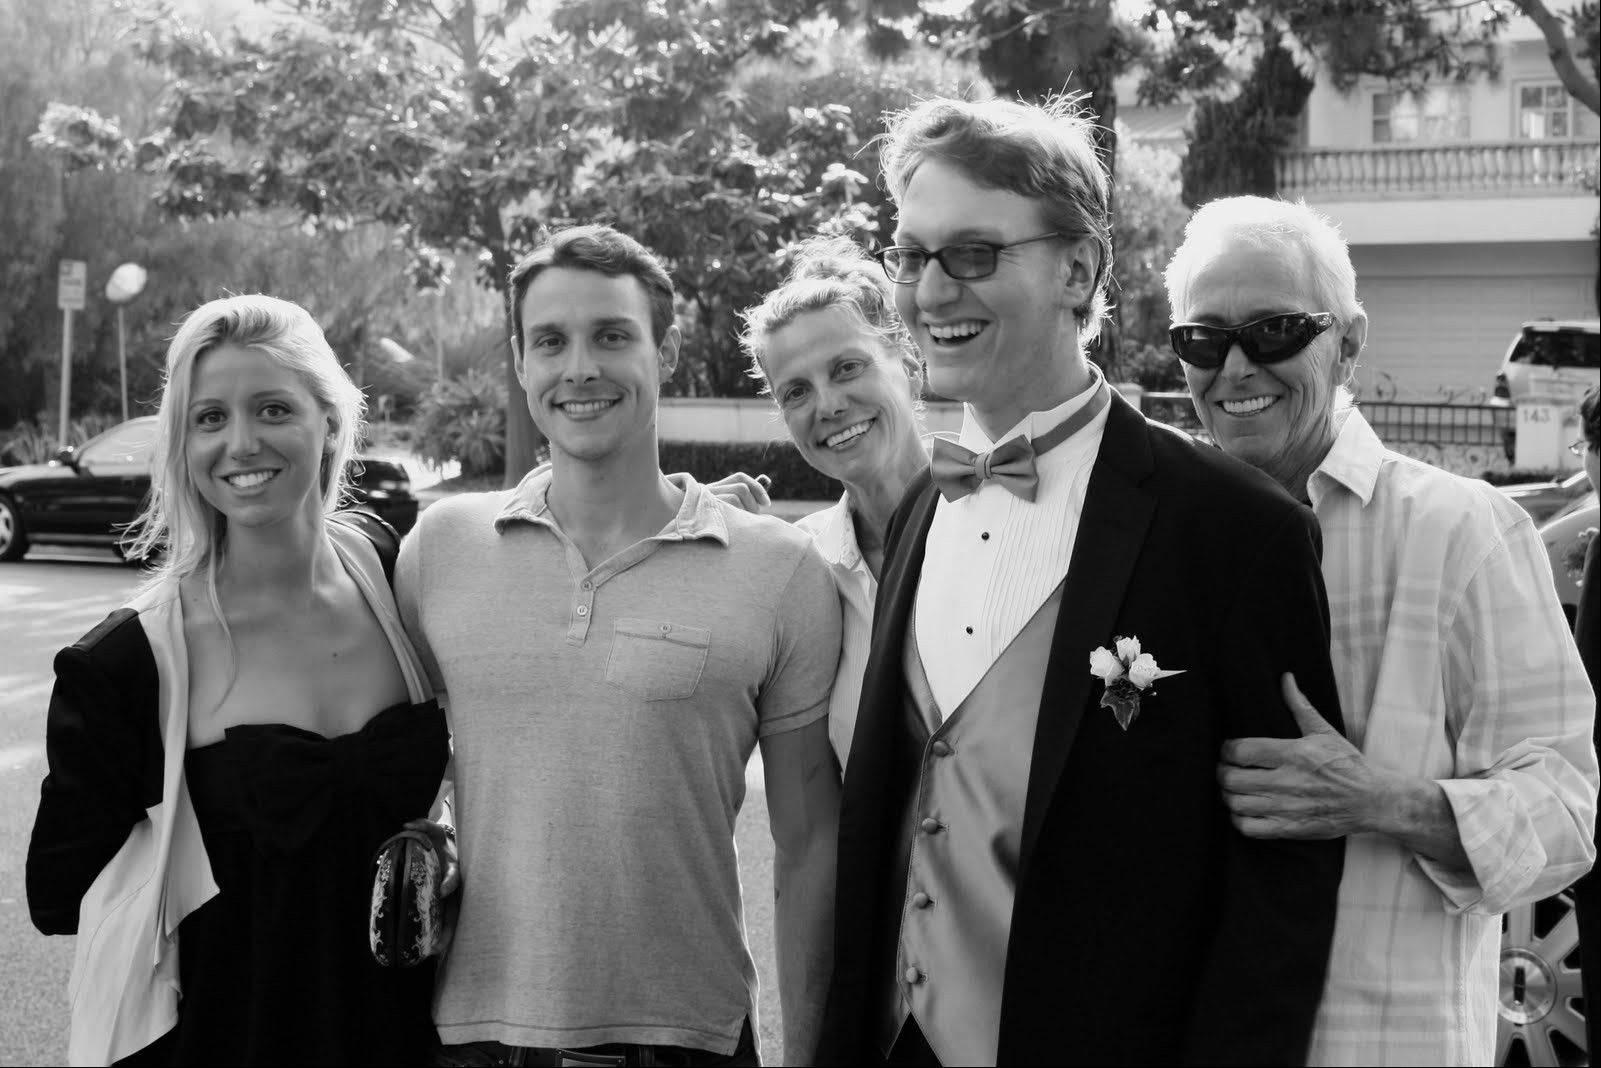 Film director Jim Abrahams and his wife, Nancy, at right, started The Charlie Foundation to Cure Pediatric Epilepsy nearly 20 years ago when their son Charlie, in foreground, suffered from the illness. Their children Jamie and Joseph also are pictured. The foundation will sponsor a fundraiser Friday in Bloomingdale featuring actress Meryl Streep and comedian Jeff Garlin.